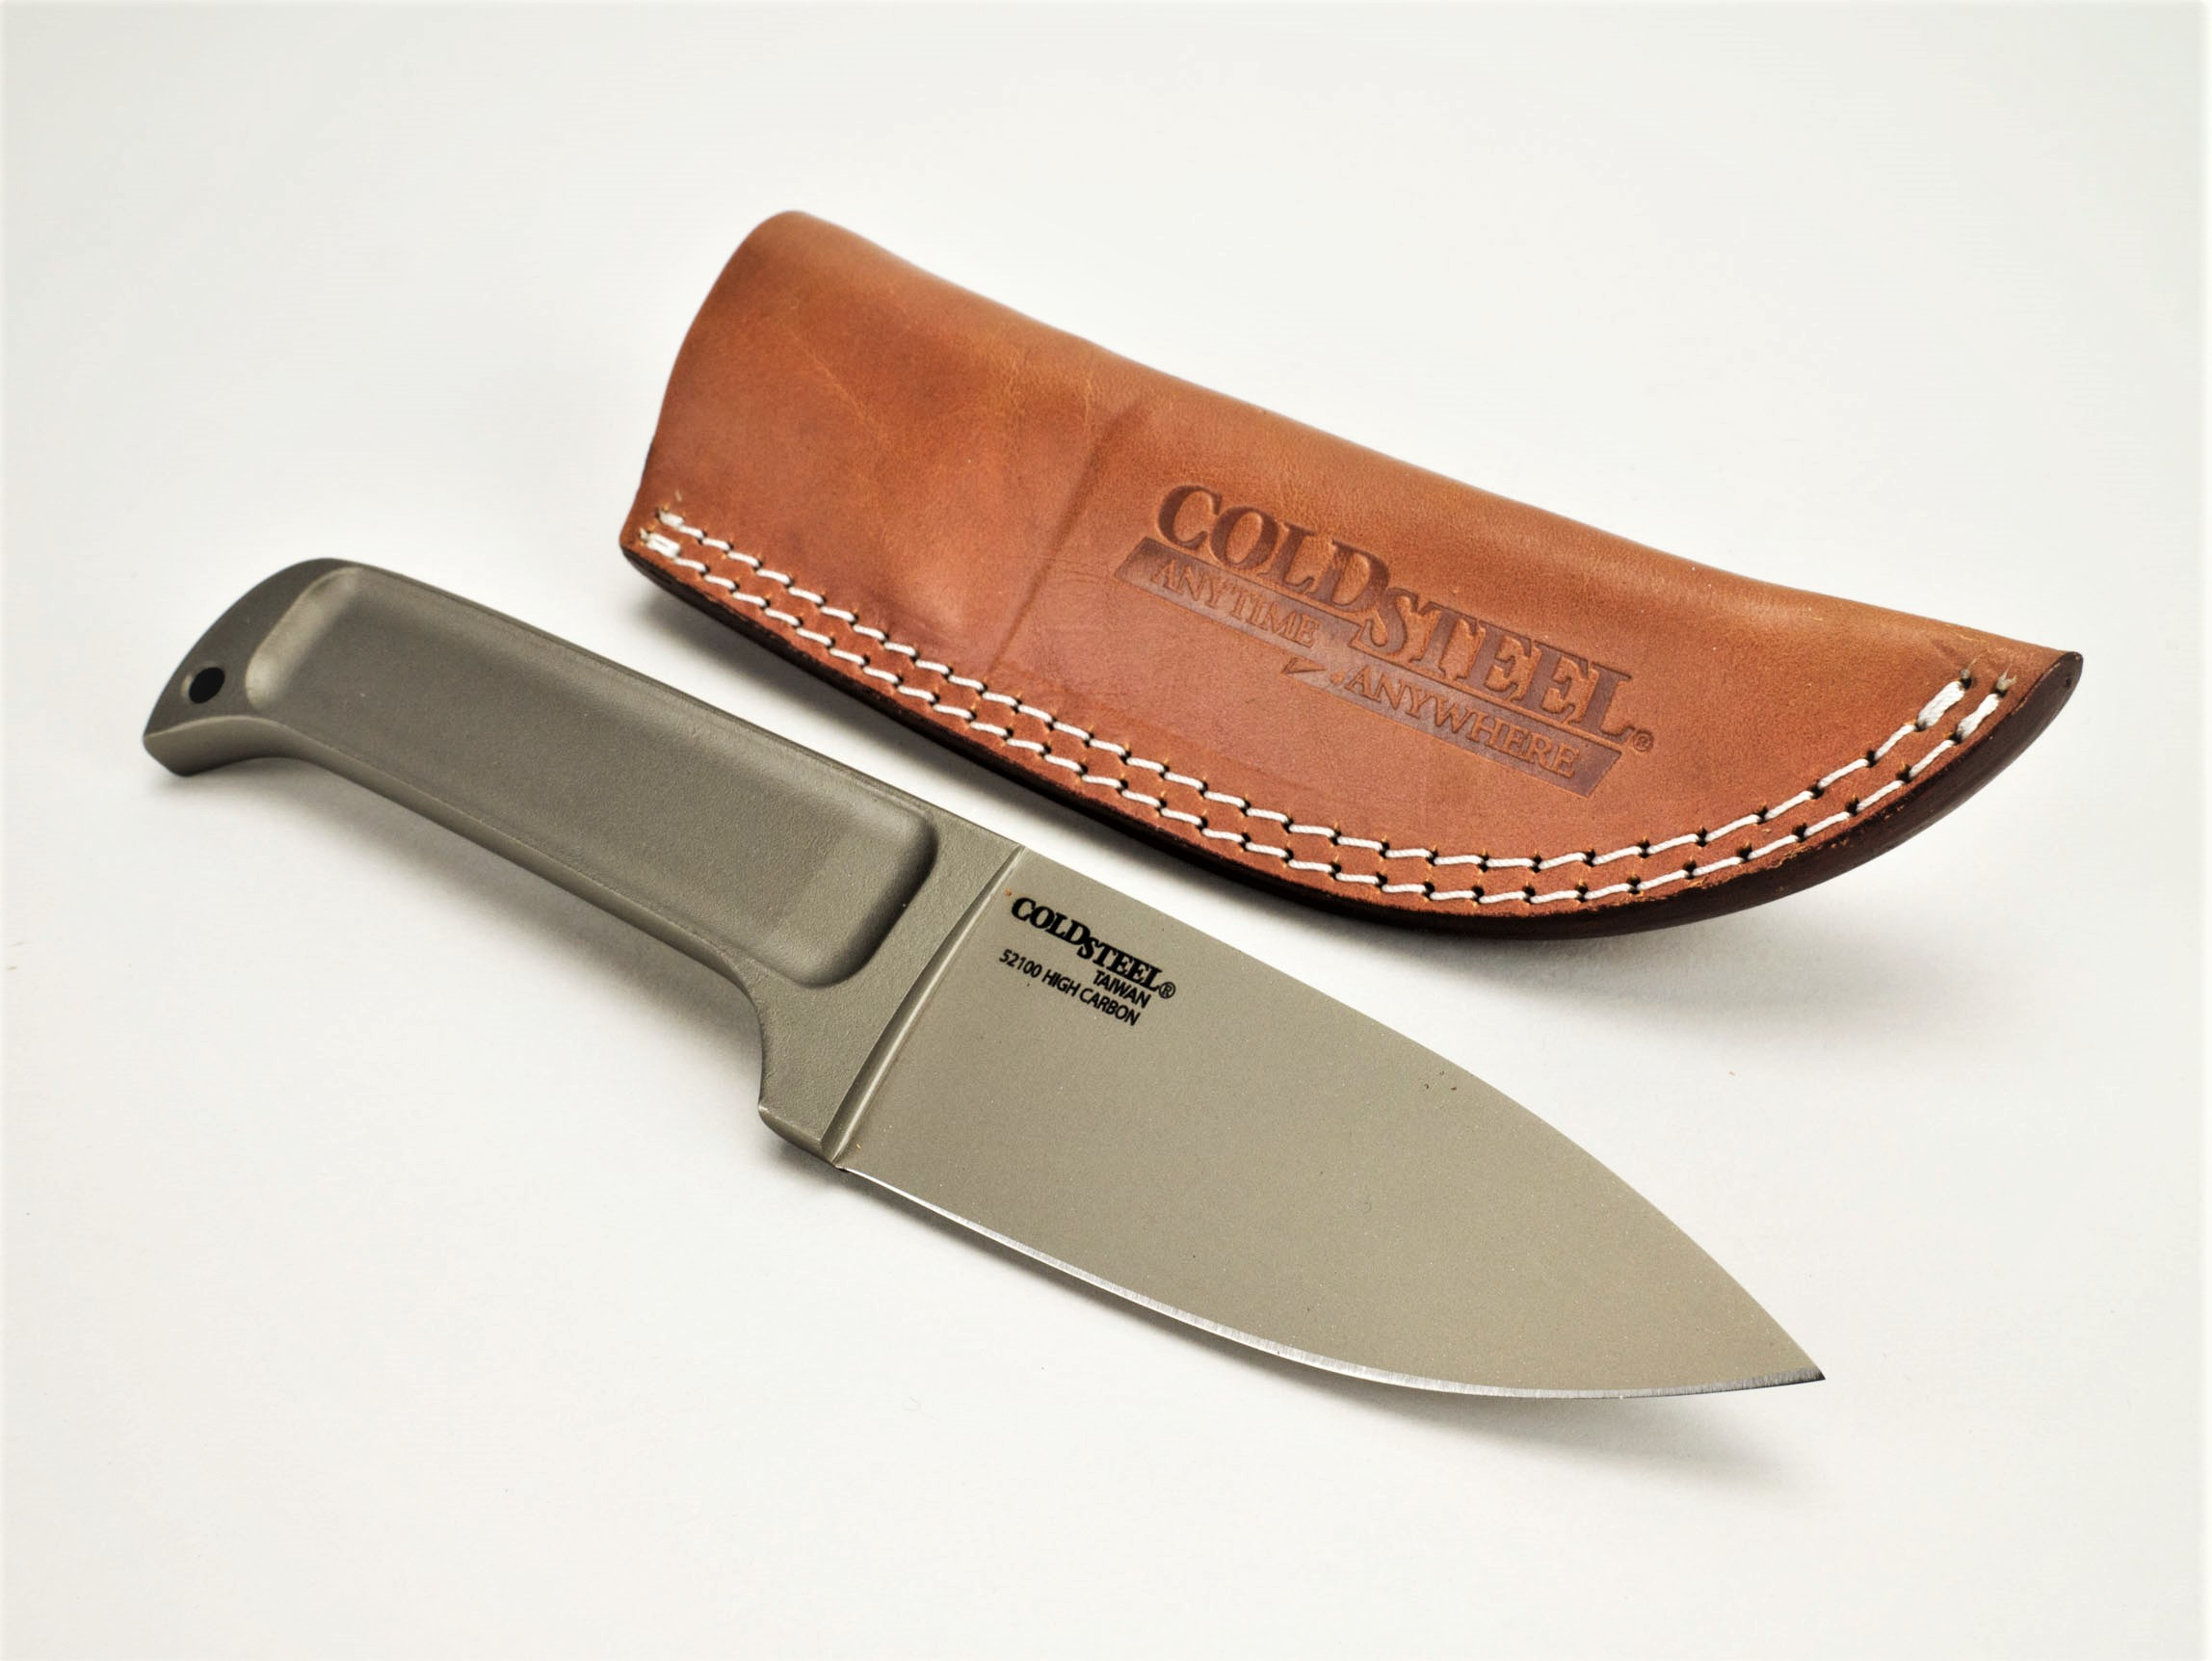 COLD STEEL DROP FORGED HUNTER €135,95